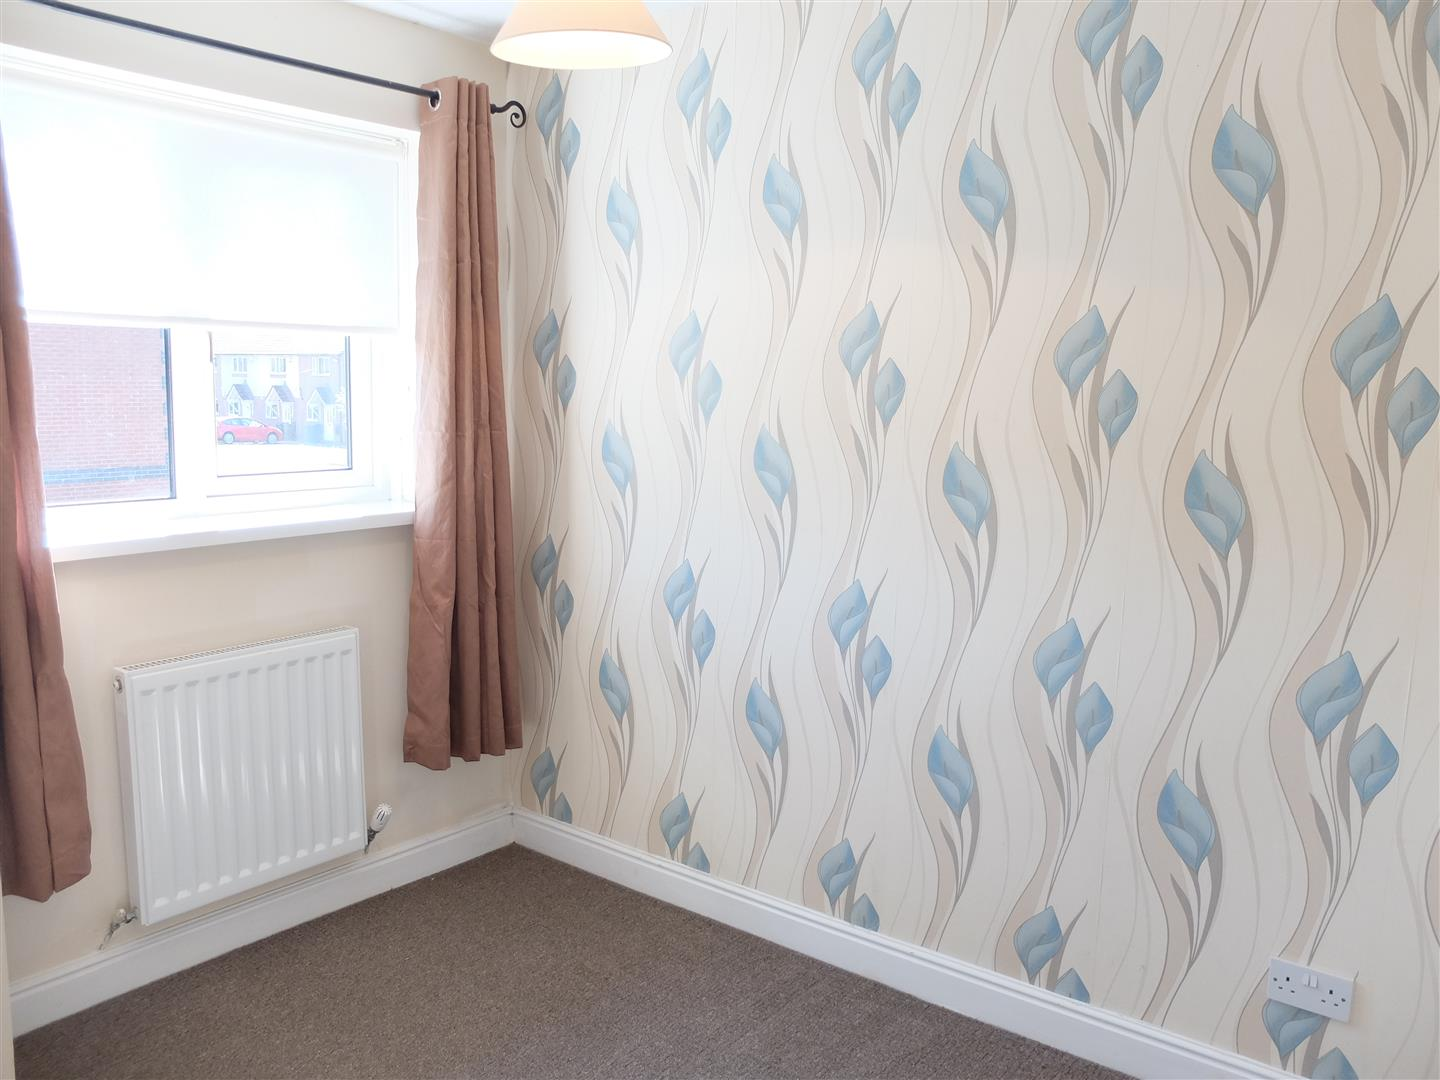 2 Bedrooms House - Semi-Detached For Sale 6 Scotby Gardens Carlisle 80,000